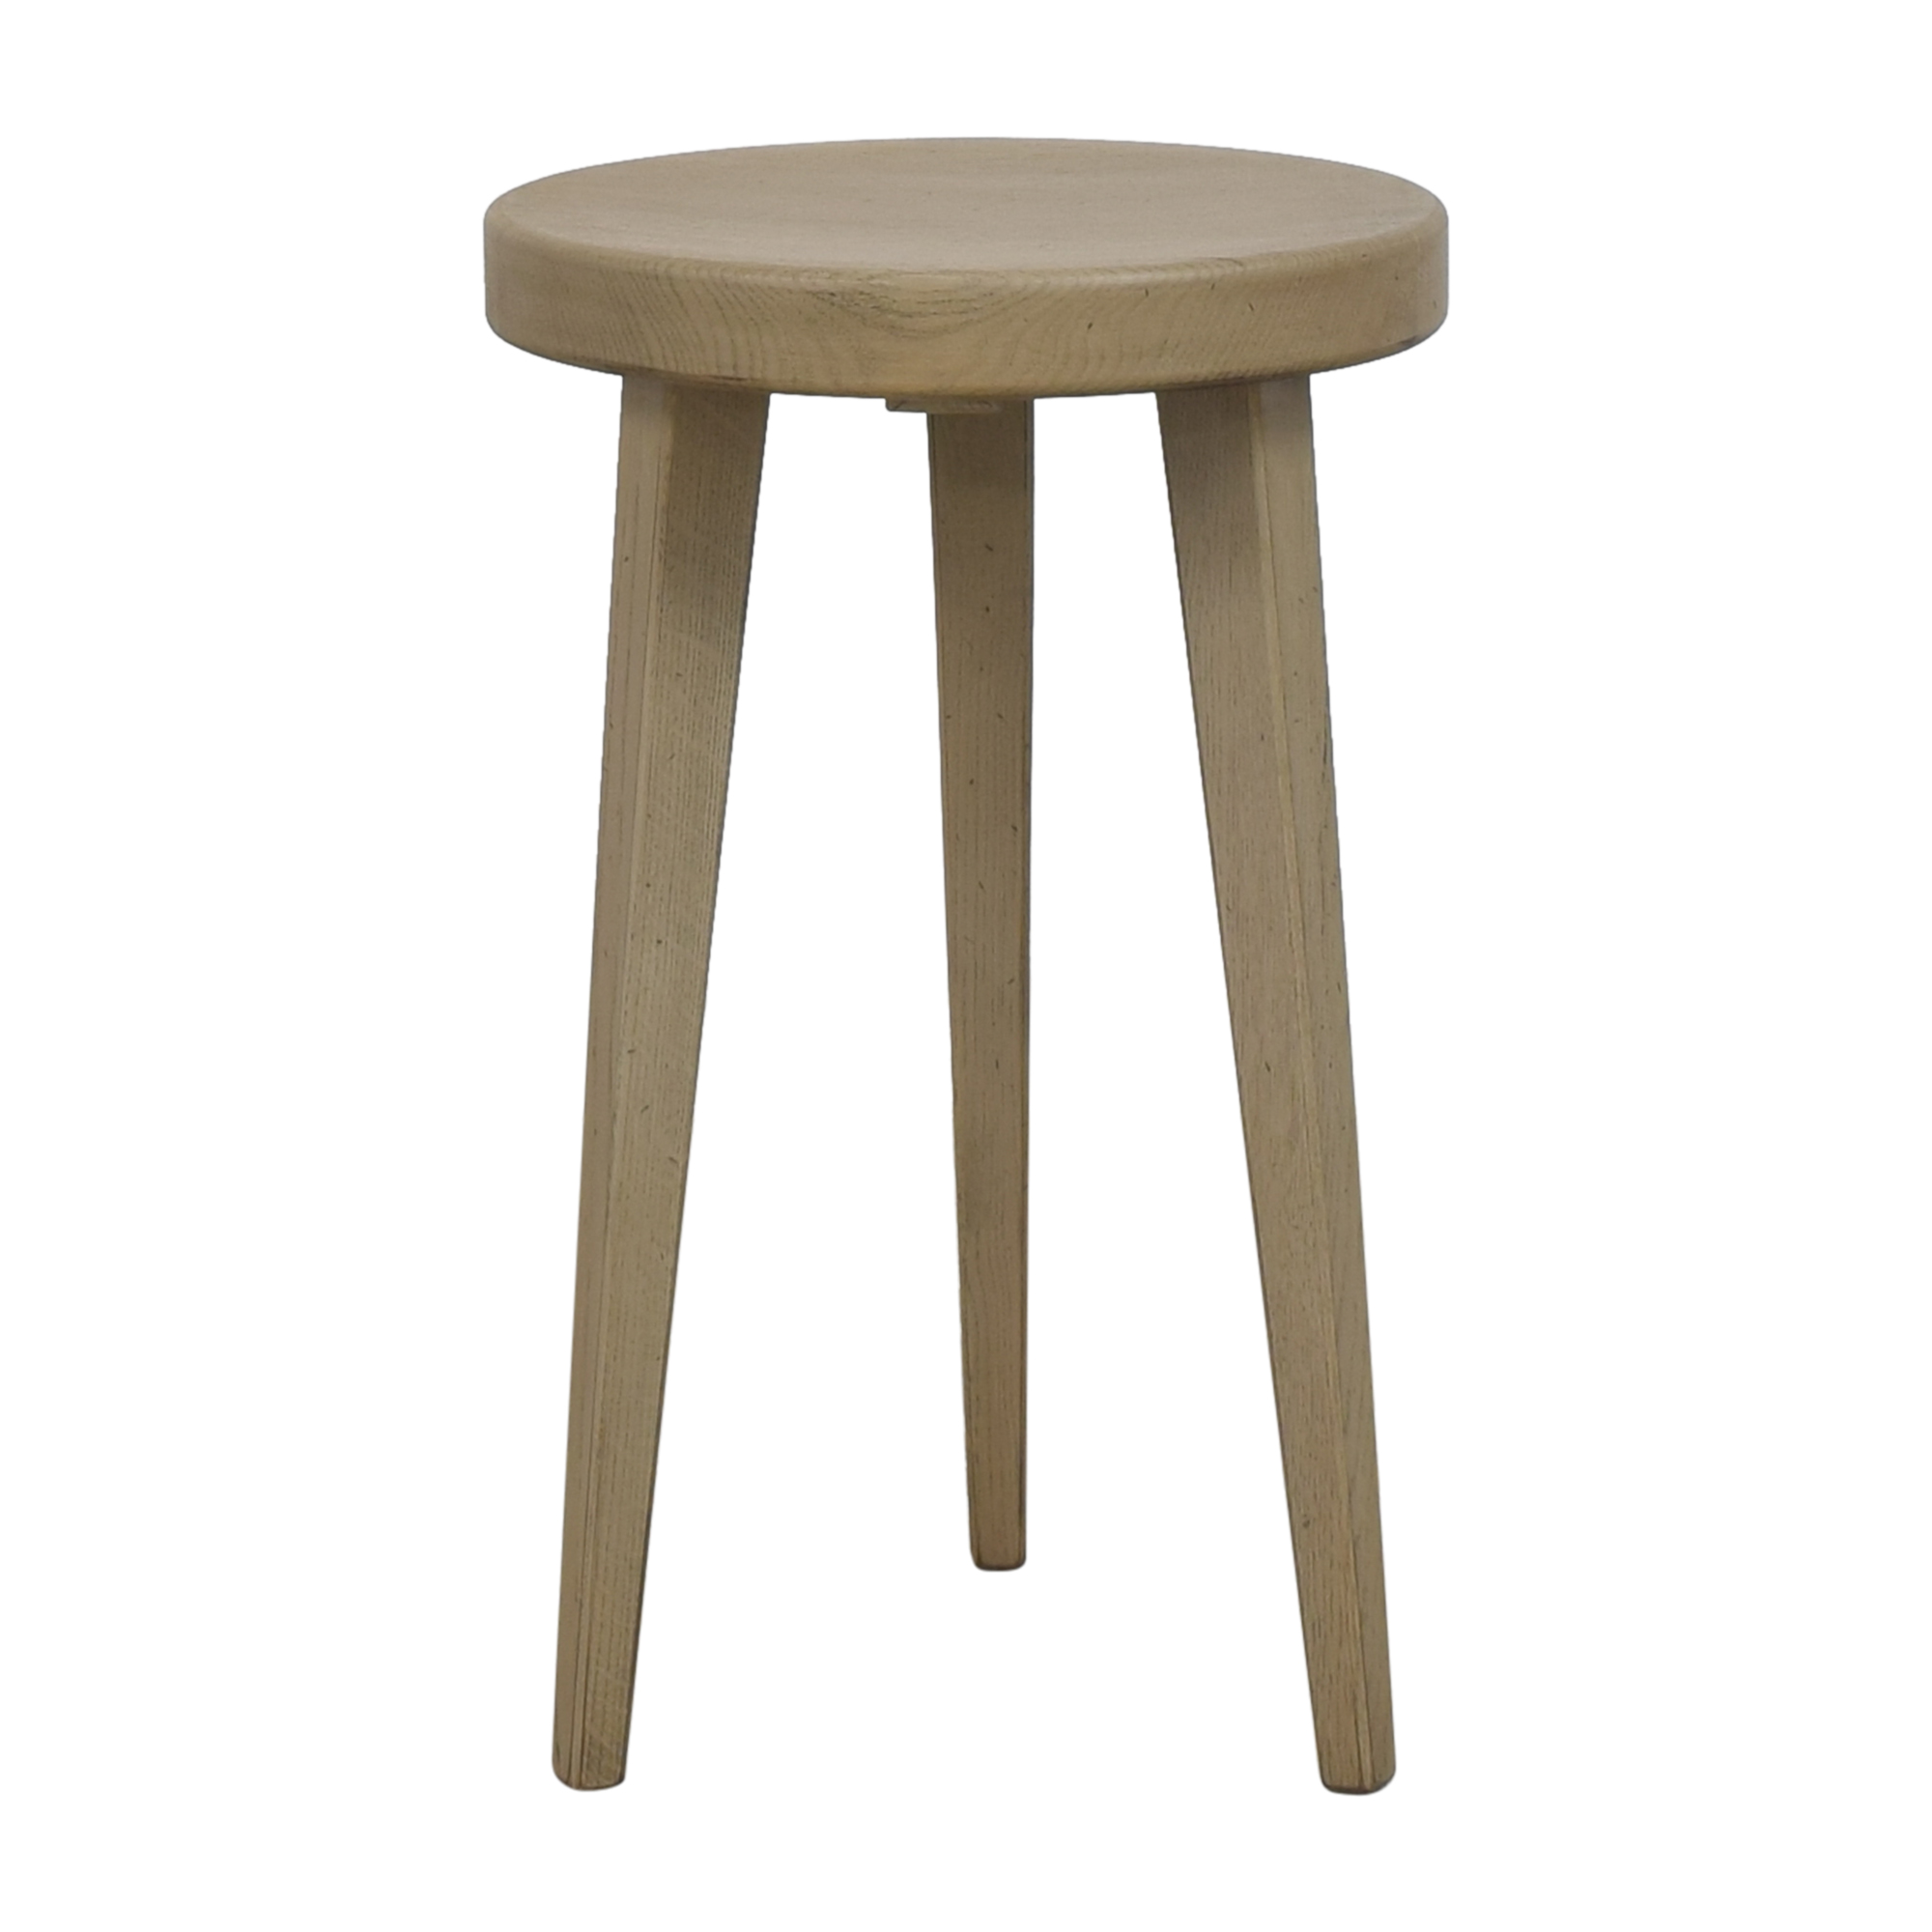 Custom Backless Bar Stool / Chairs